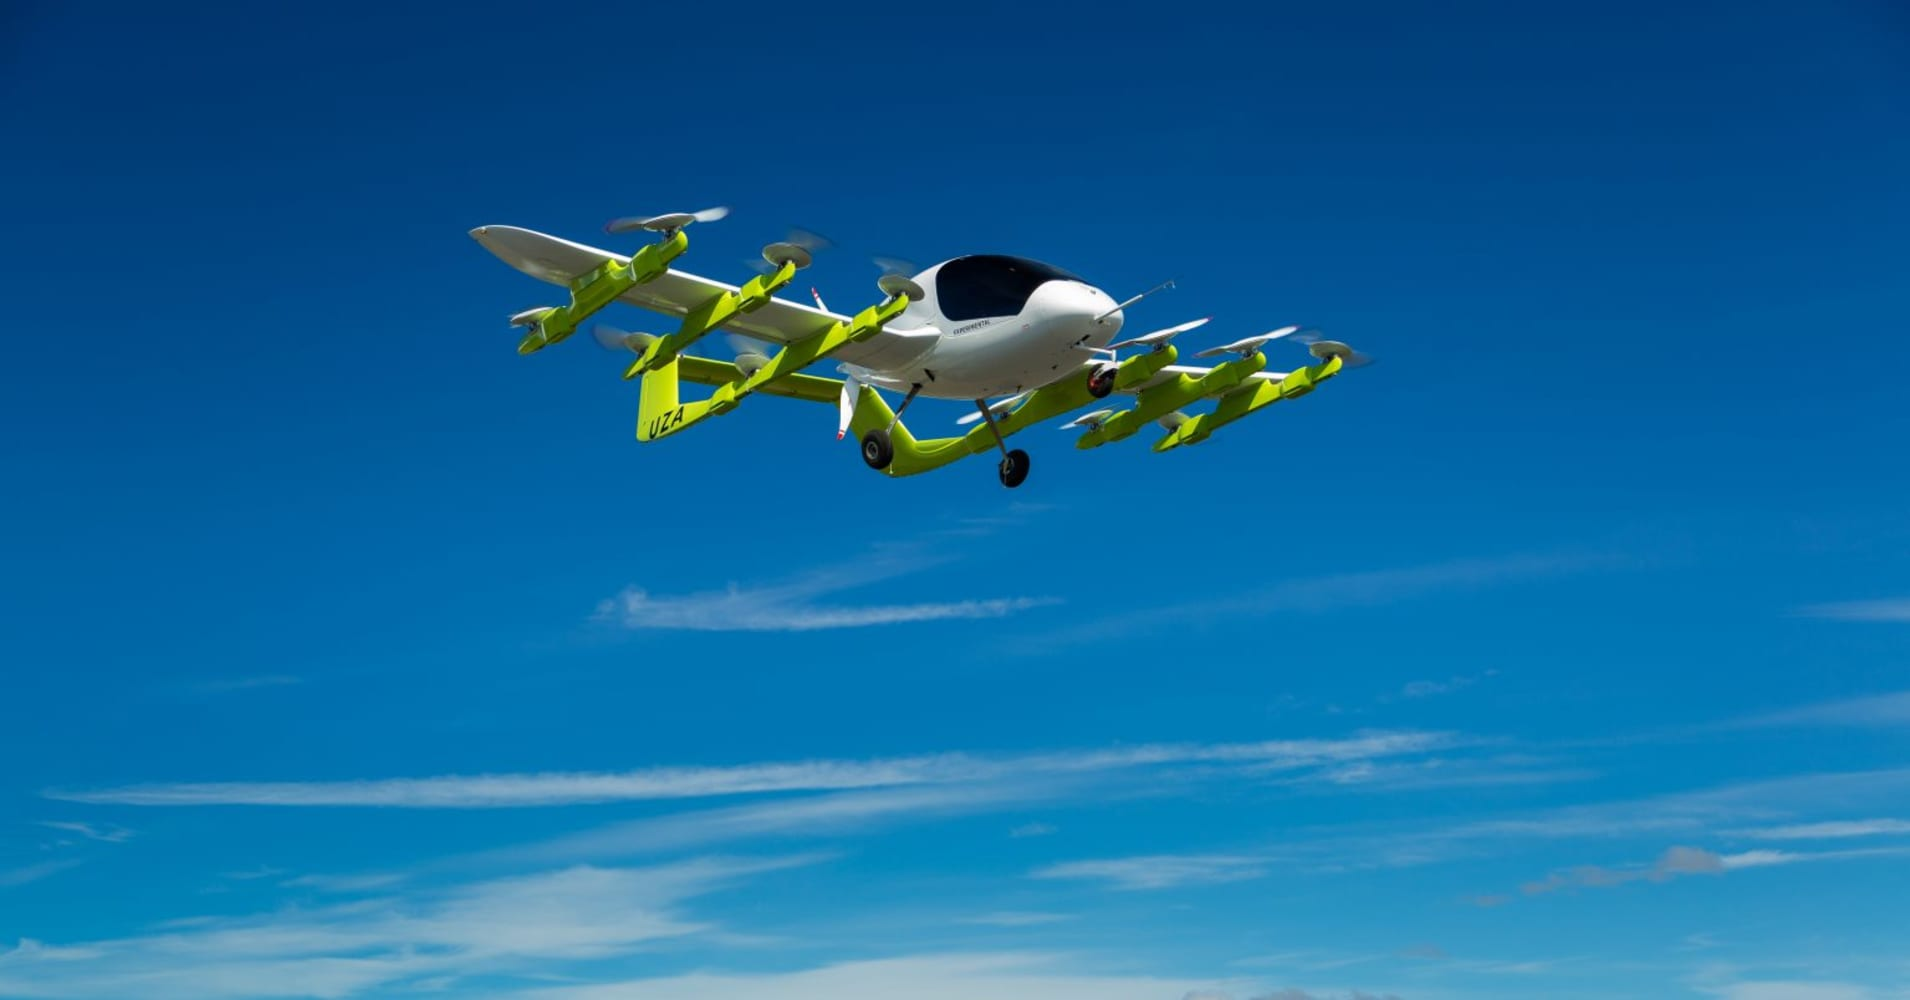 GOOGLE founder flying taxi takes to skies